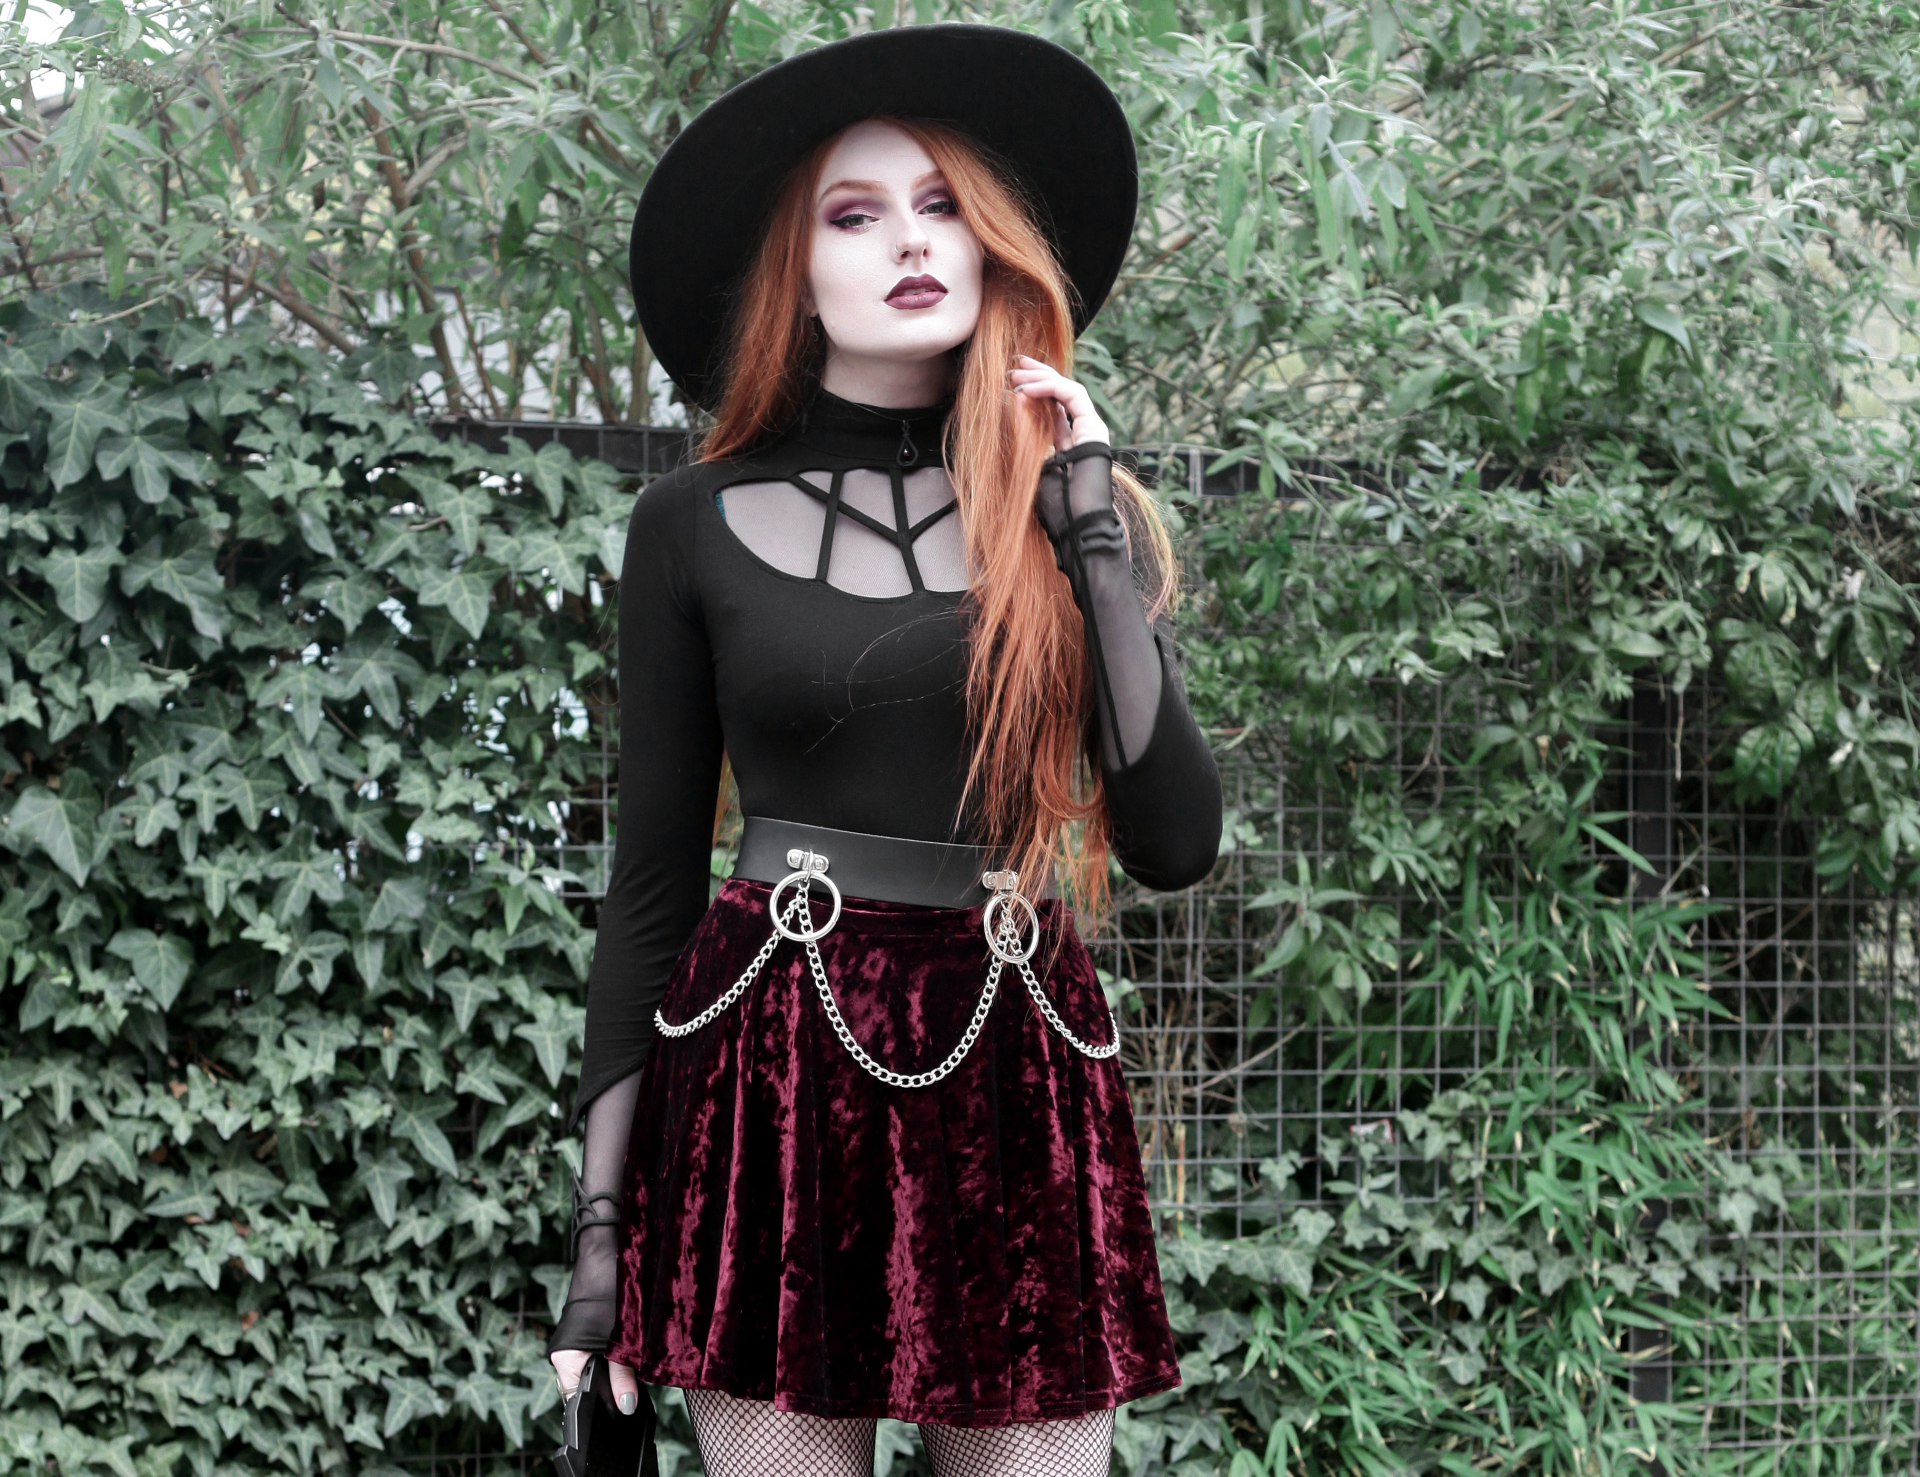 Olivia Emily wears Rogue and Wolf Moondoll Top, Killstar Fedora Hat, Crushed Velvet skirt, and Mary Wyatt Chain Belt